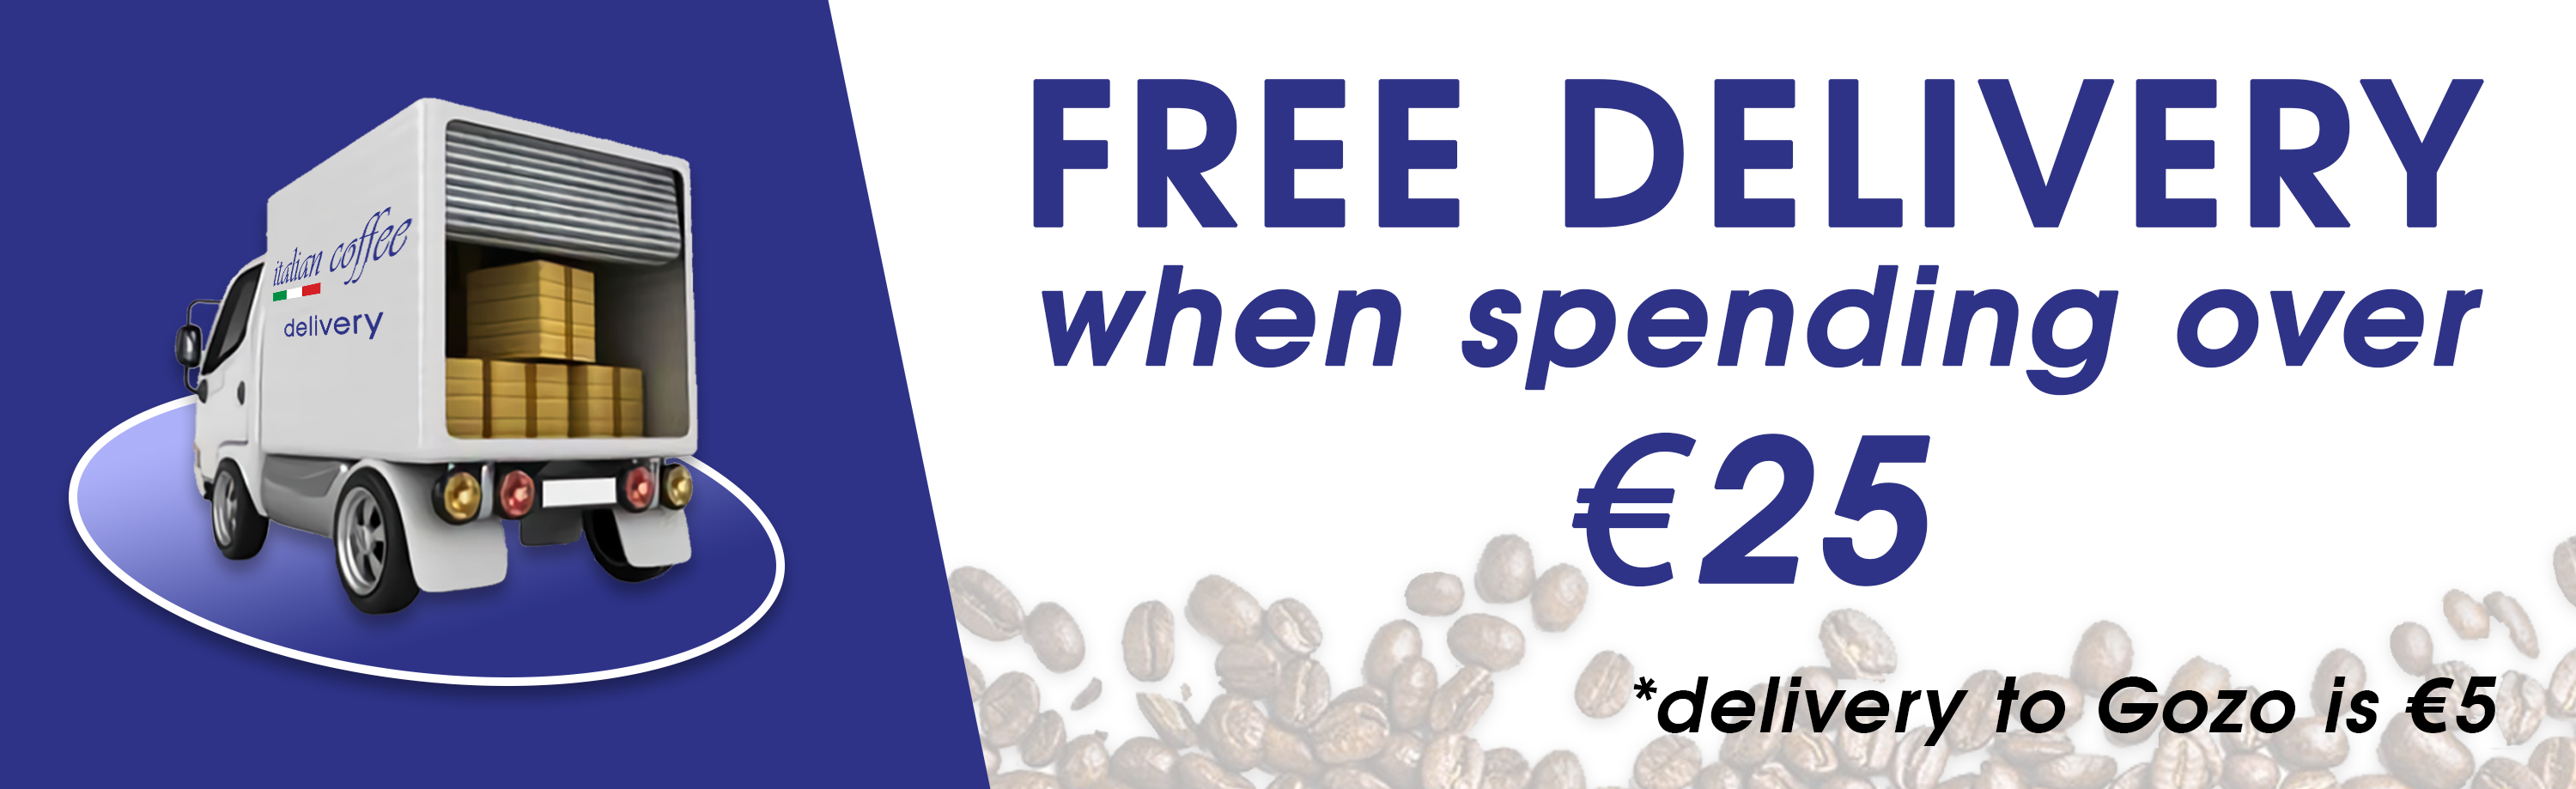 Free delivery when spending over €25